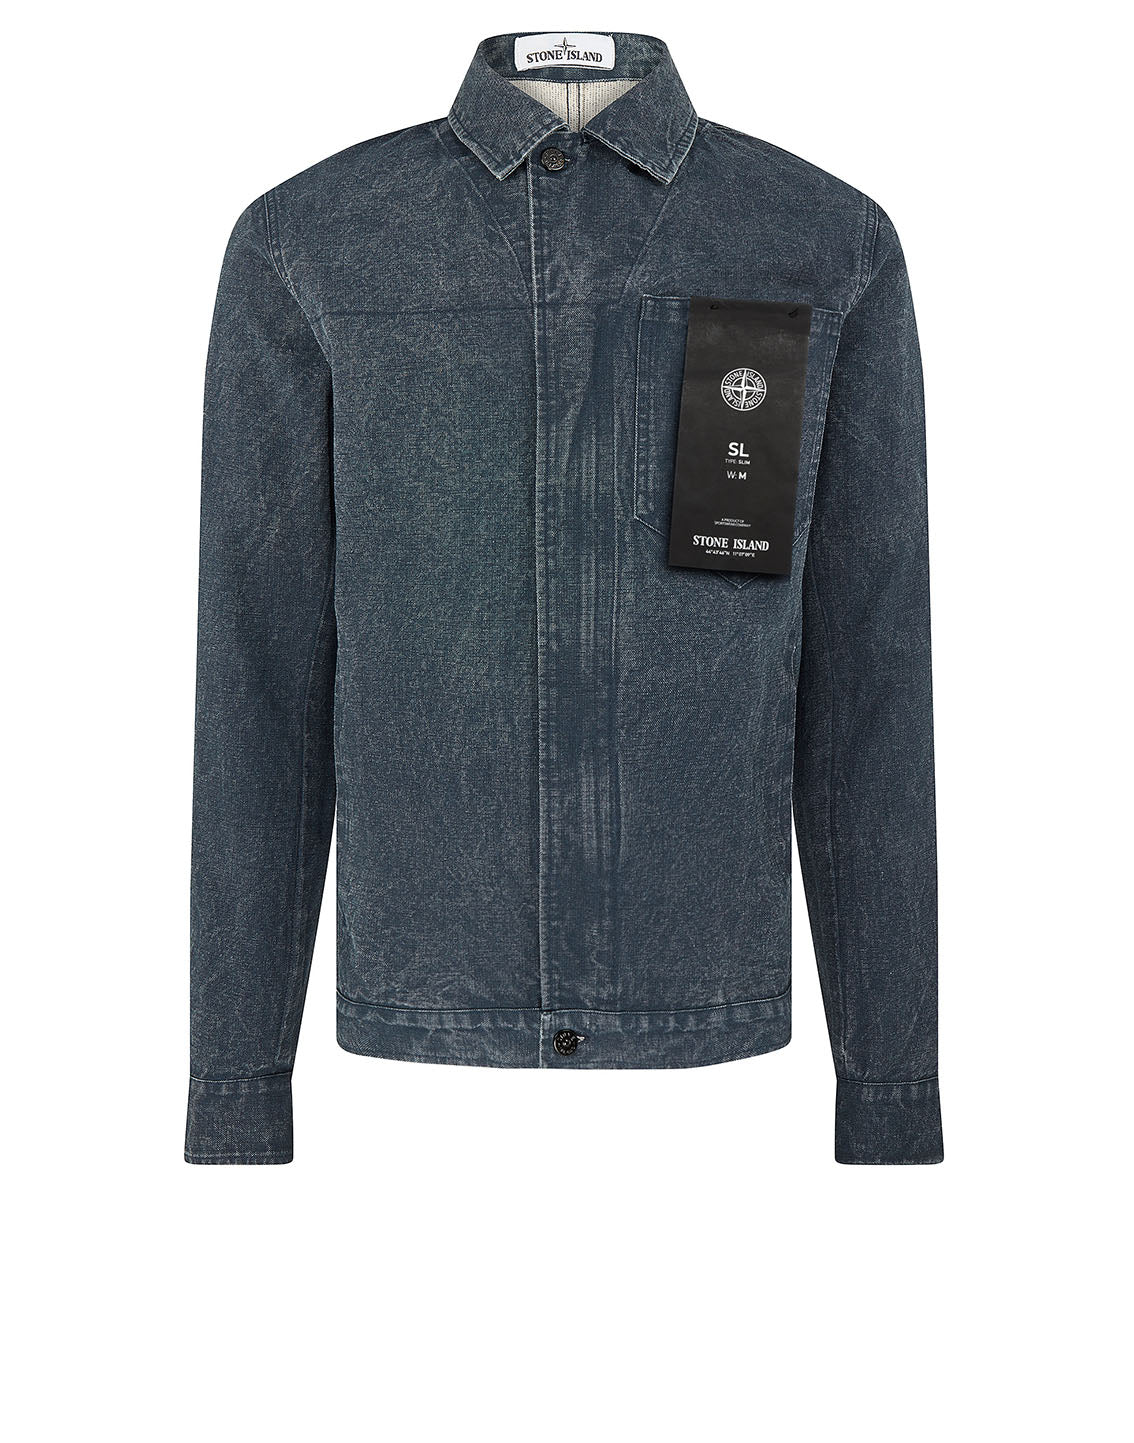 440J1 PANAMA PLACCATO Jacket in Blue Marine